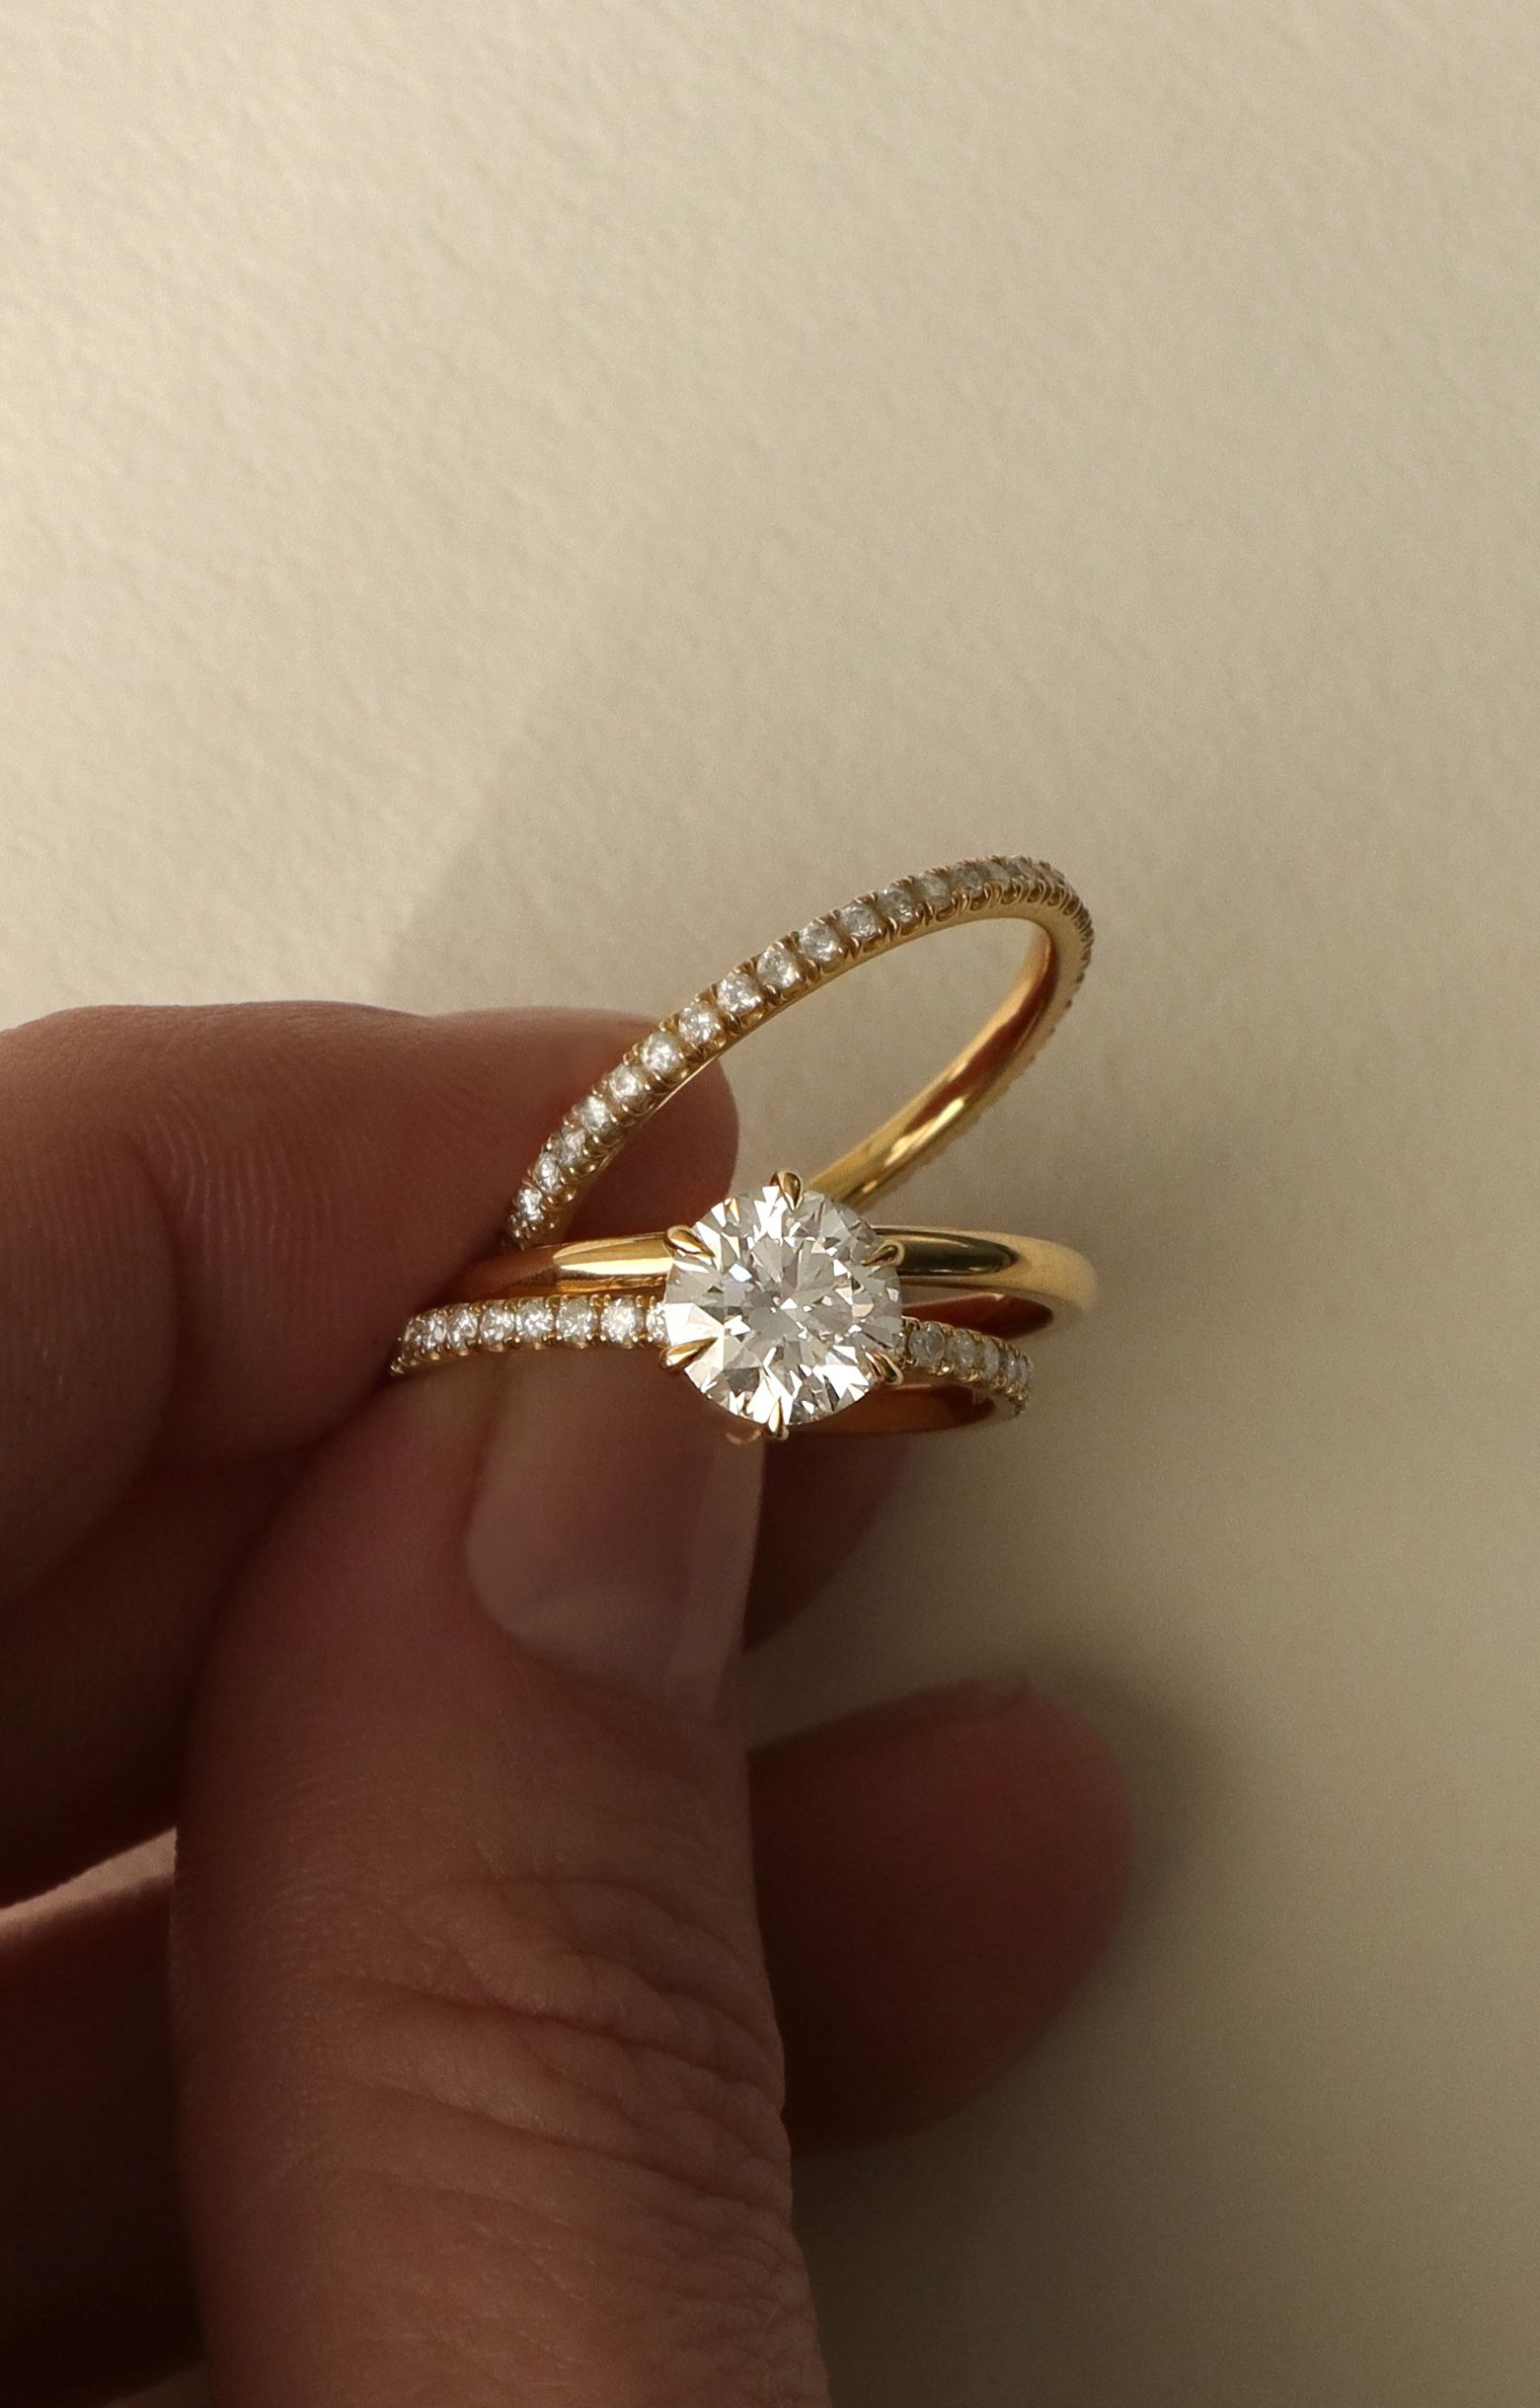 bands champagne ten milgrain size product w year ready diamond anniversary gold theresa to texture pytell ship vintage band wedding in yellow stone